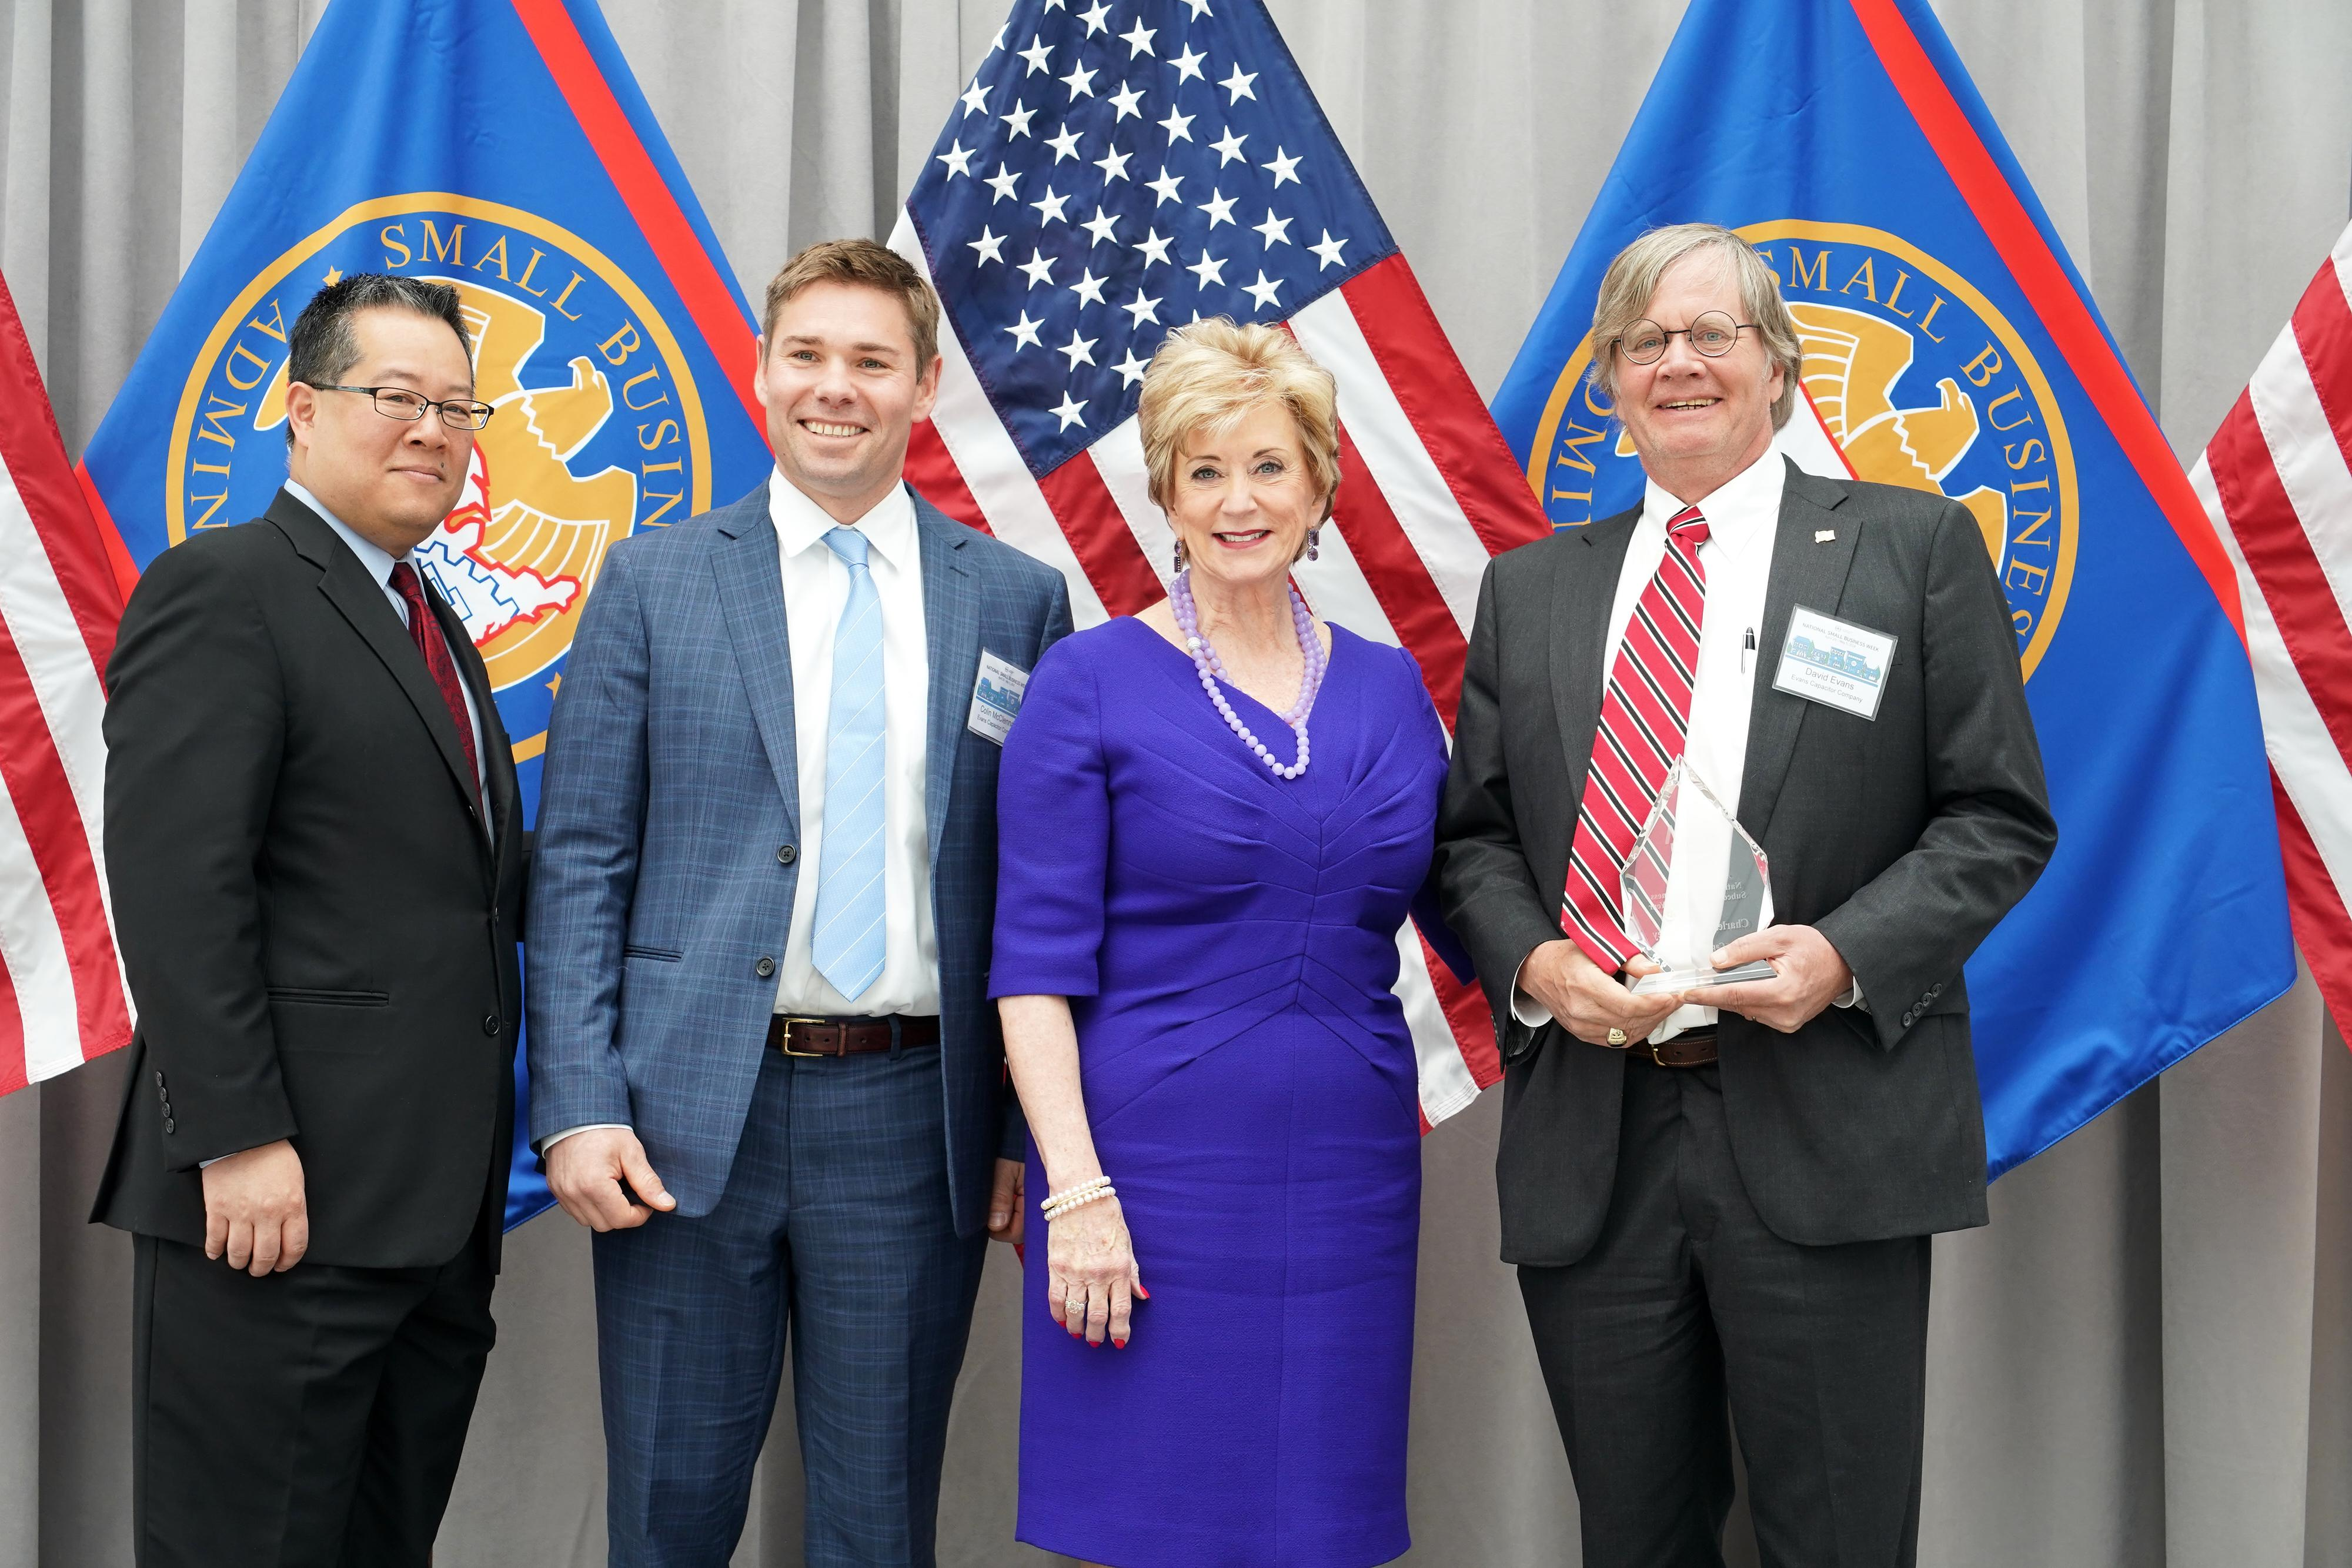 Colin McClennan and Dave Evans Accepting the 2018 Subcontractor of the Year award in Washington DC from Linda McMahon, the Administrator of the Small Business Administration.